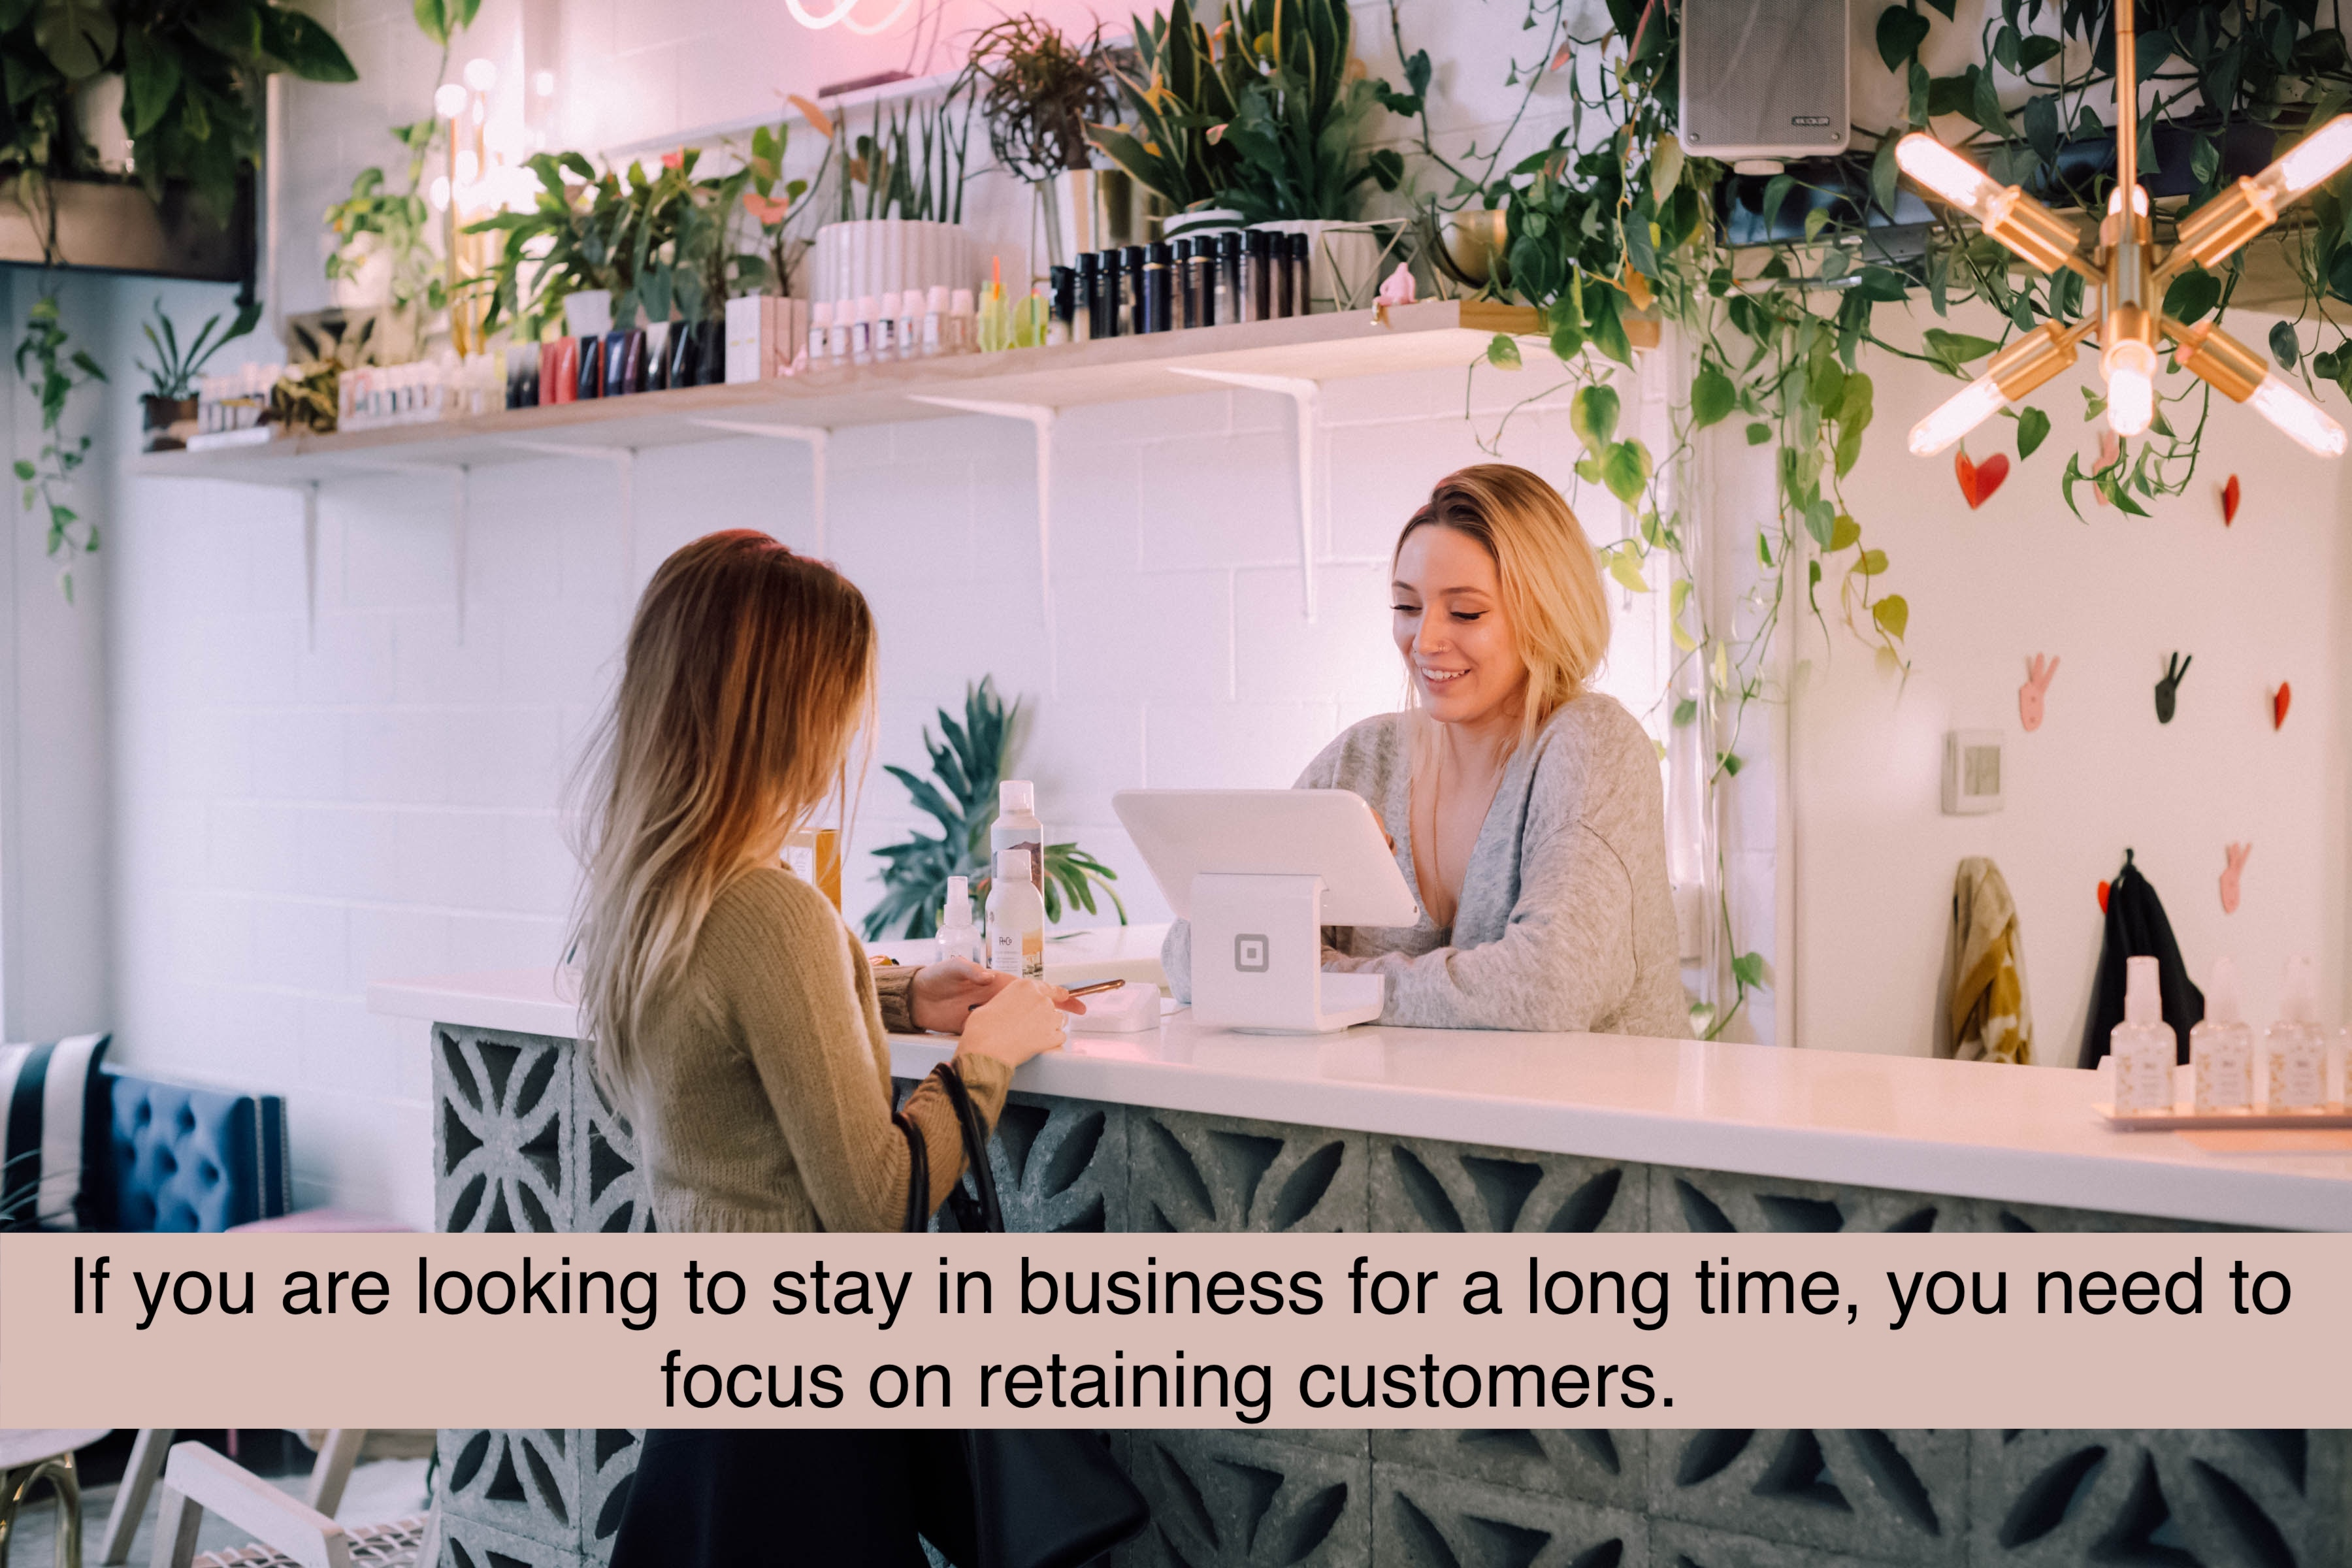 If you are looking to stay in business for a long time, then you need to focus on retaining customers.